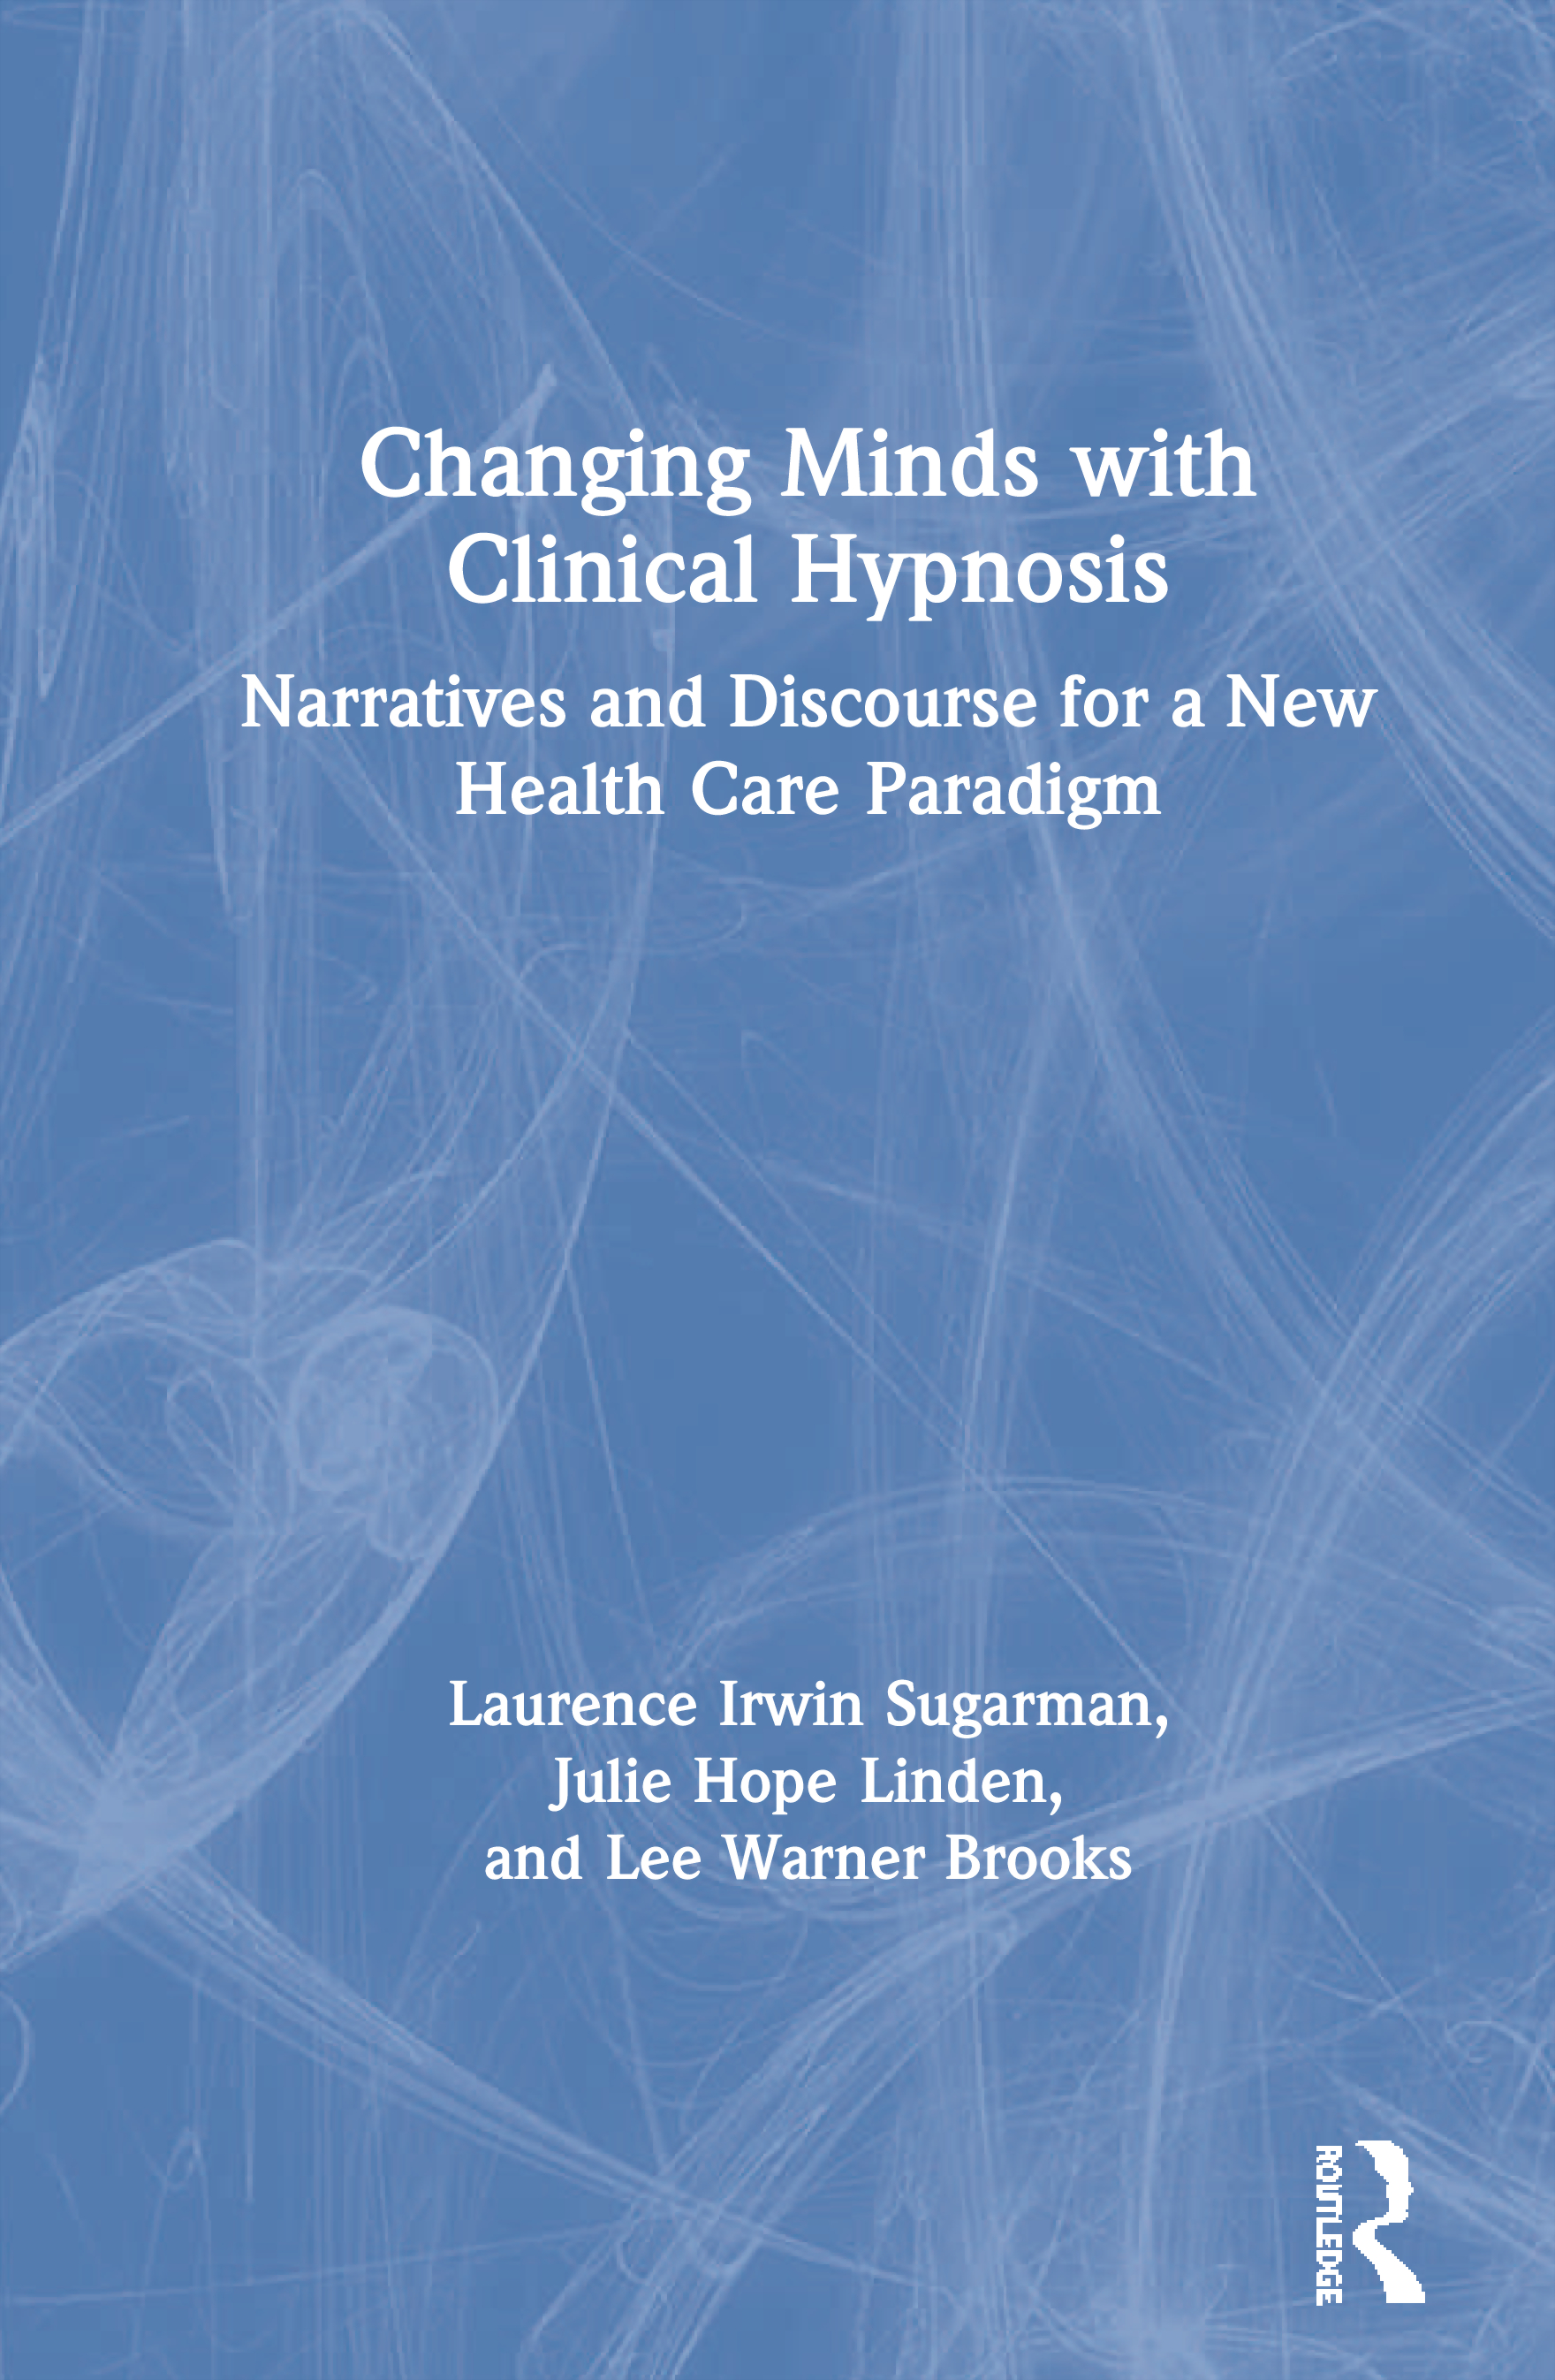 Changing Minds with Clinical Hypnosis: Narratives and Discourse for a New Health Care Paradigm book cover